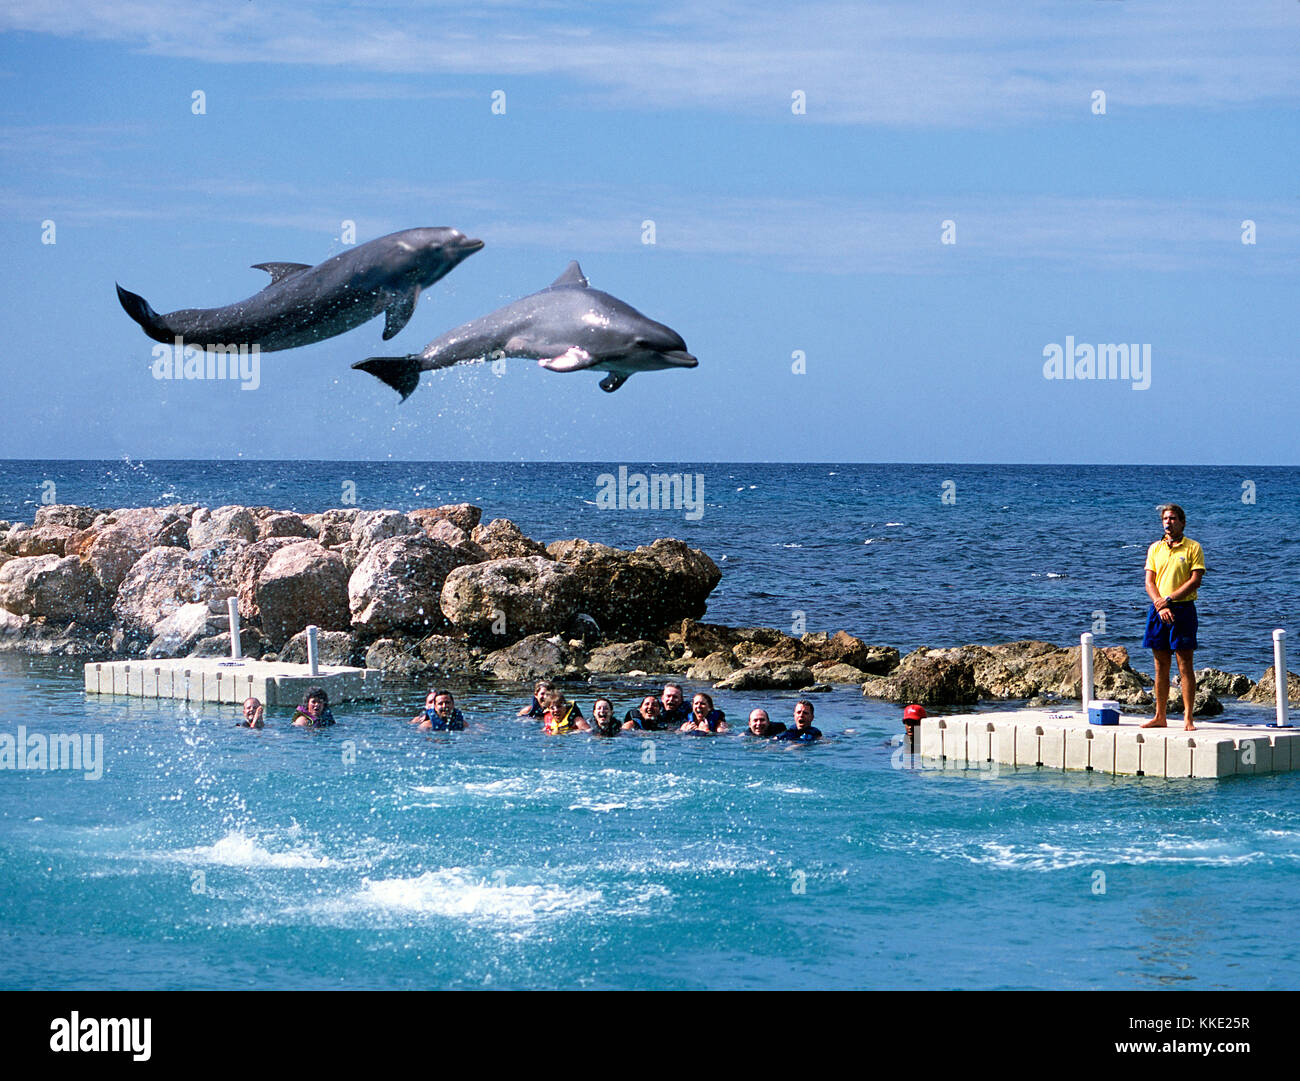 Swimming with Dolphins at Ocho Rios in Jamaica - Stock Image